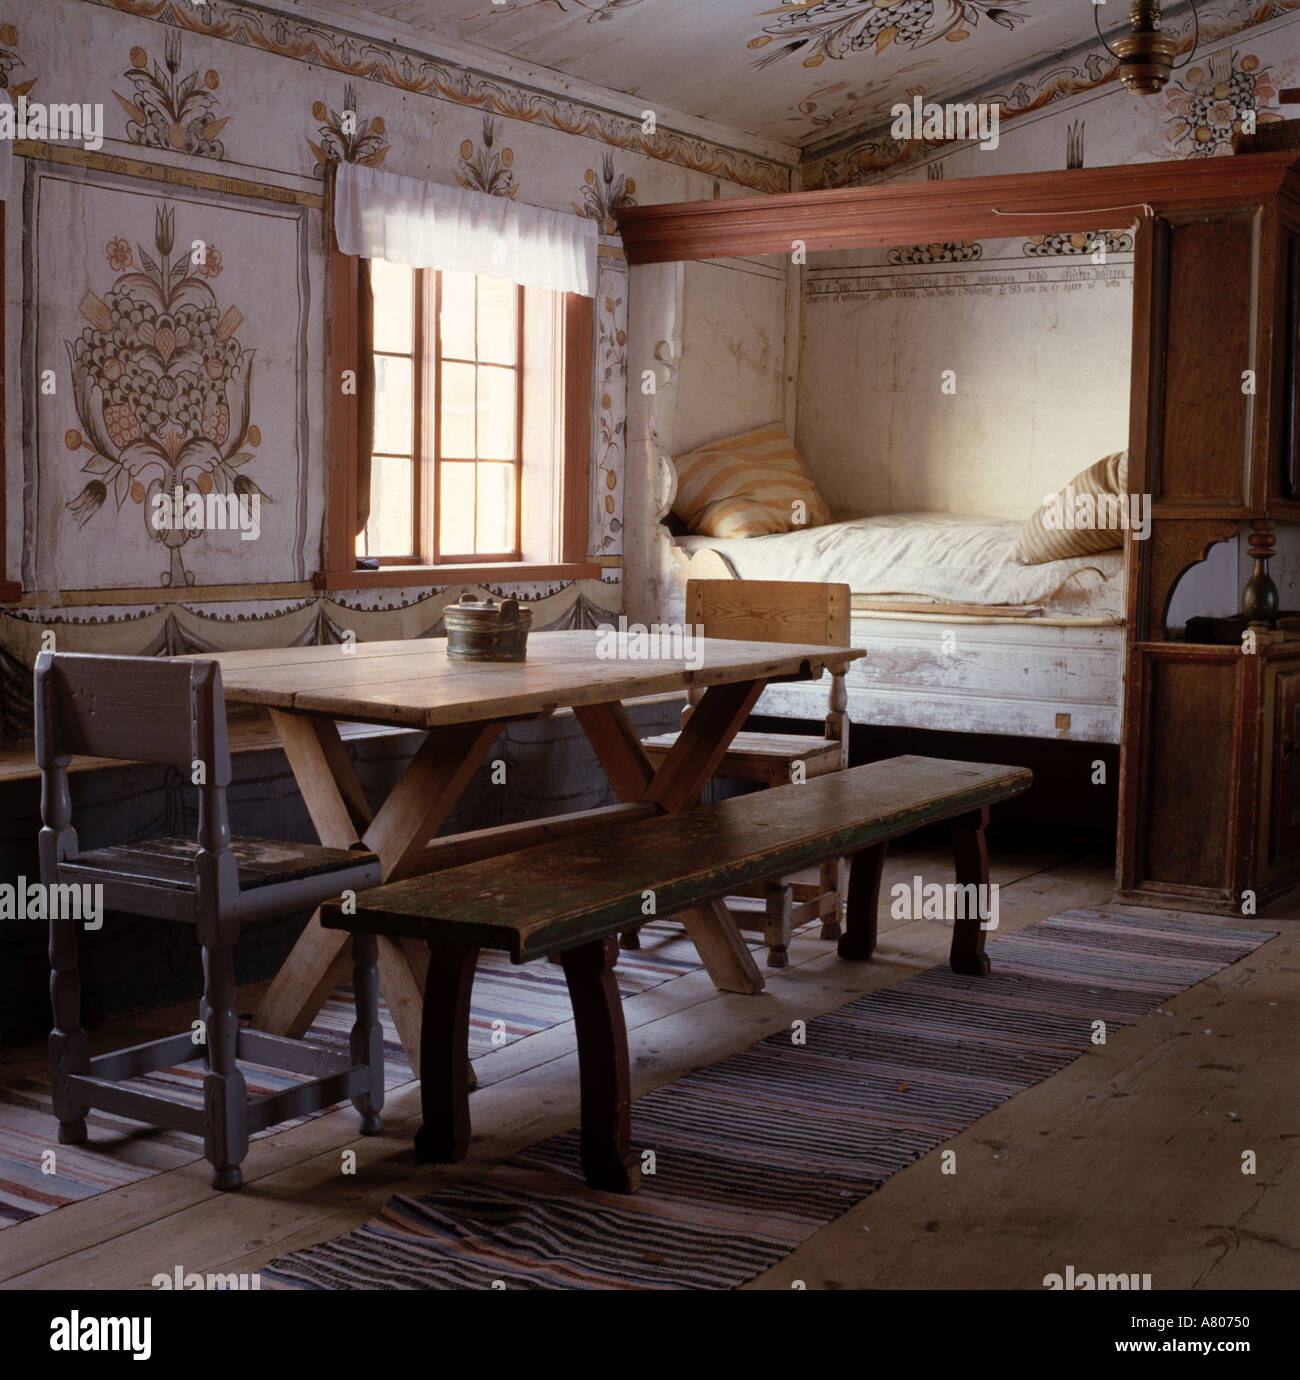 Rustic Wooden Table And Bench In Scandinavian Country Room With Simple  Four Poster Bed And Wall Paintings